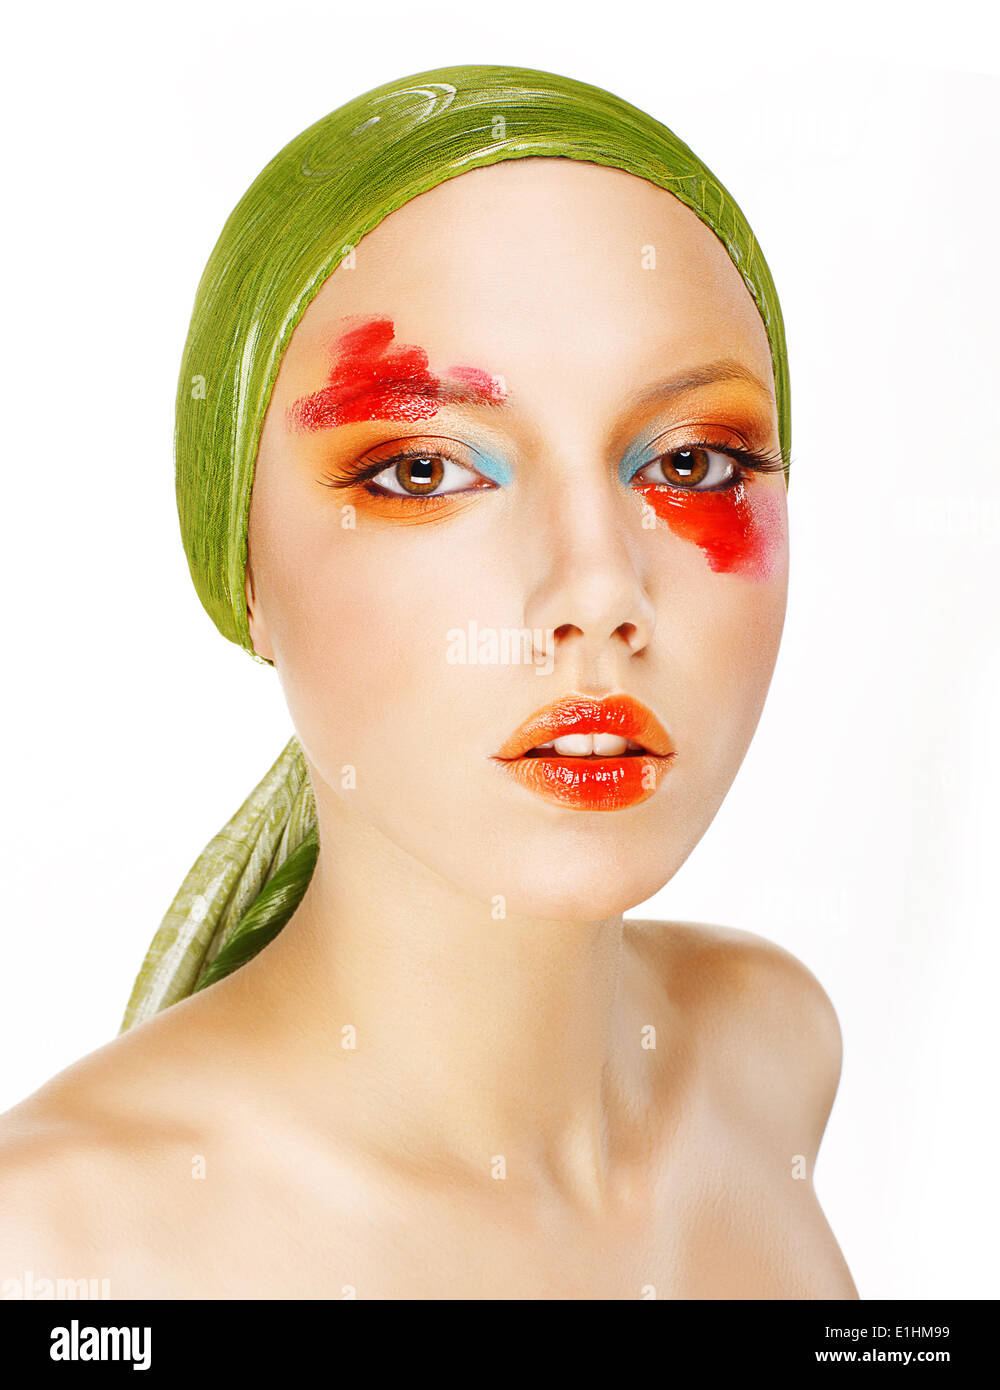 Fantasy. Glamor. Fashion Model in Green Shawl and Colorful Makeup - Stock Image